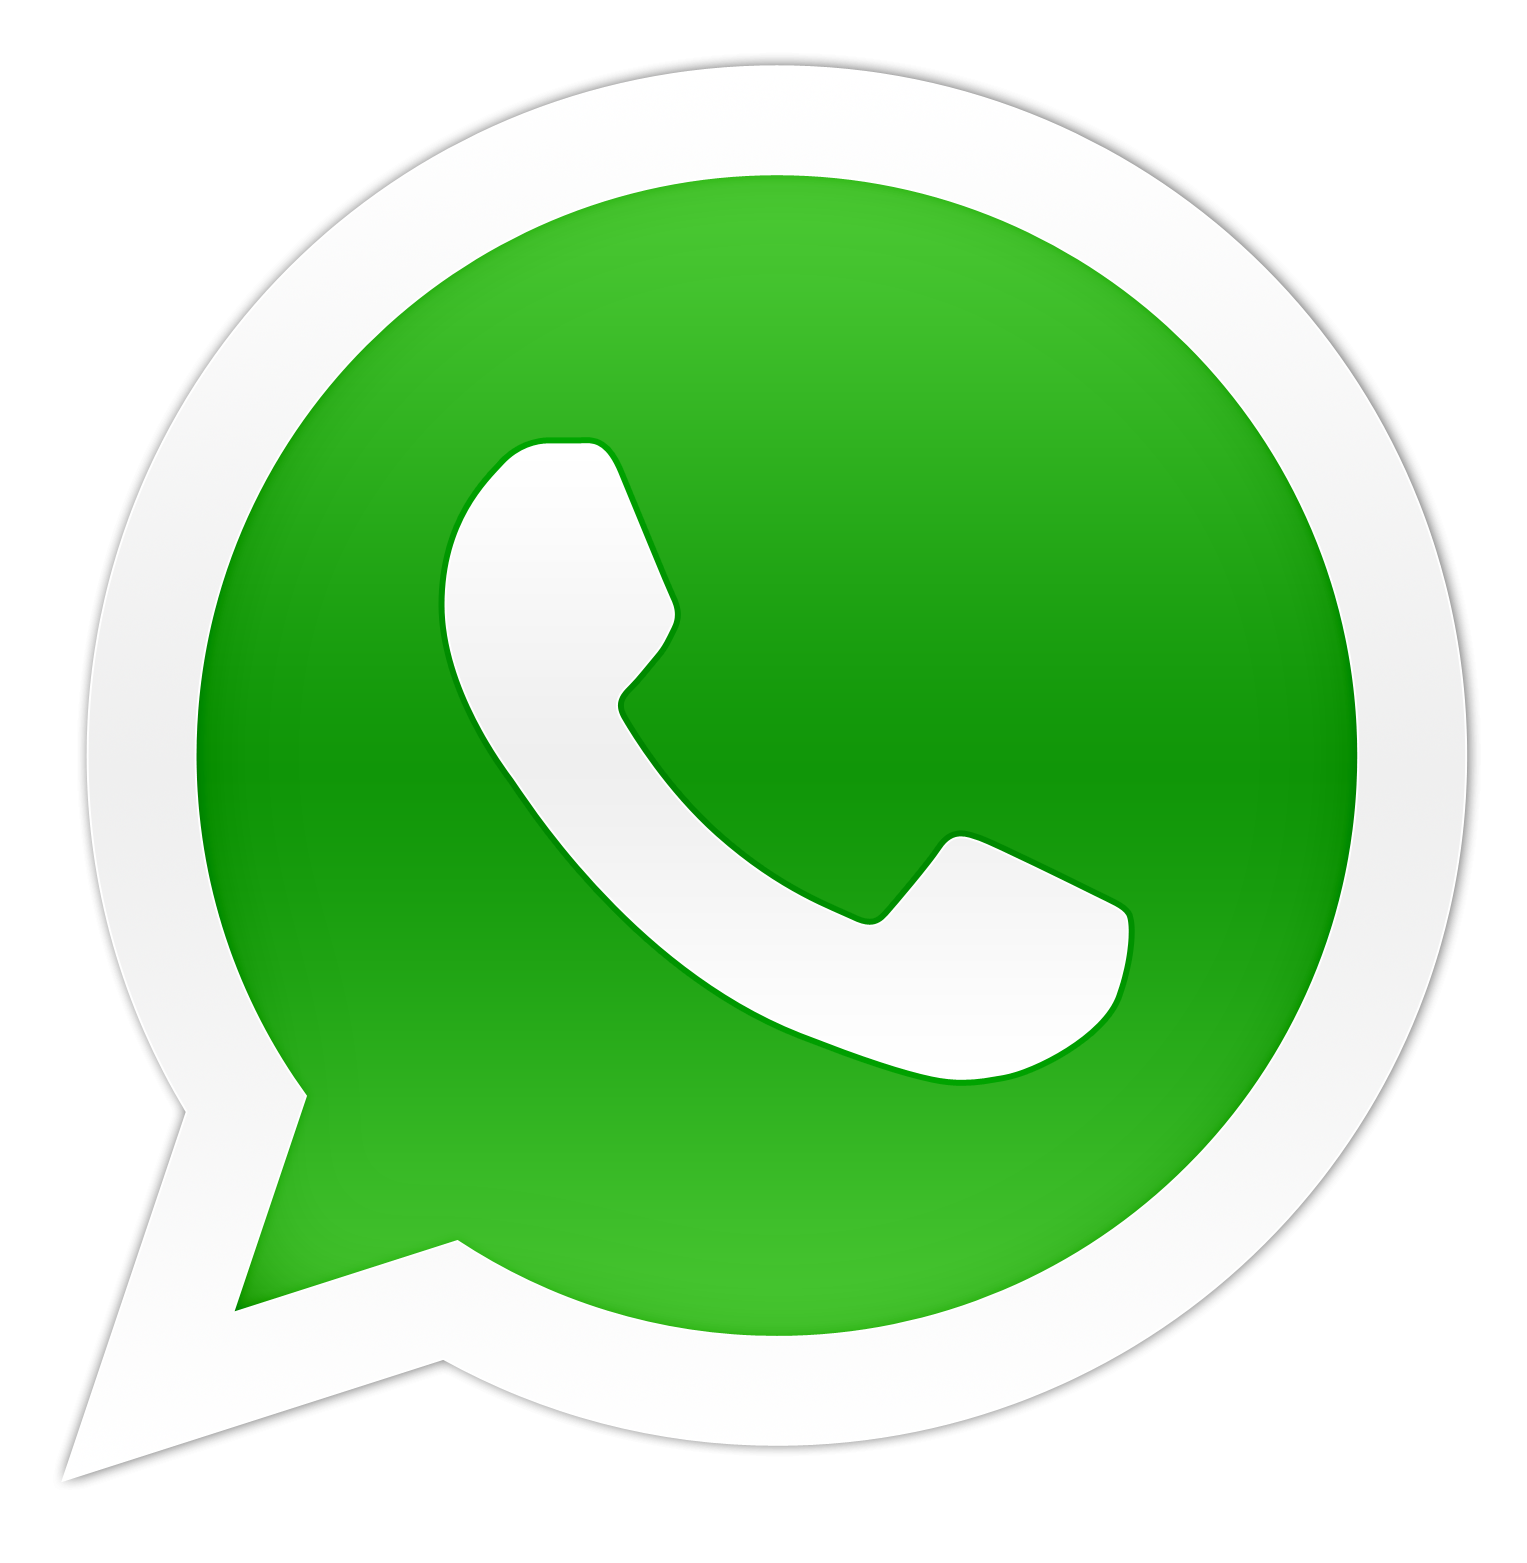 whatsapp logo icone 2